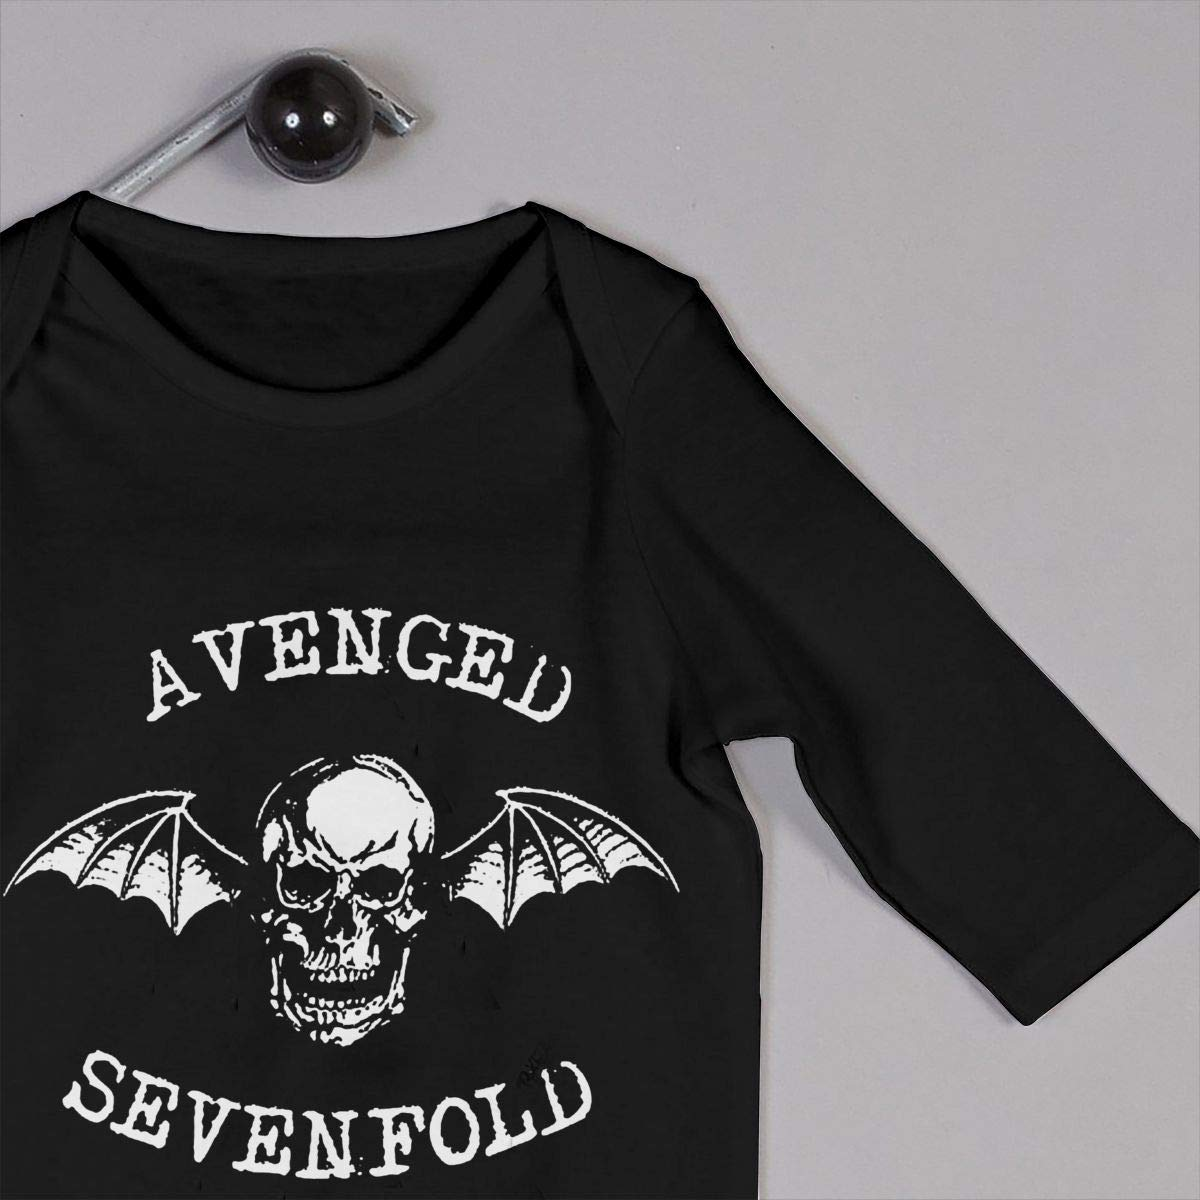 SOFIEYA Avenged Sevenfold Kids Baby Unisex Cotton Cute Long Sleeve Hooded Romper Jumpsuit Baby Crawler Clothes Black